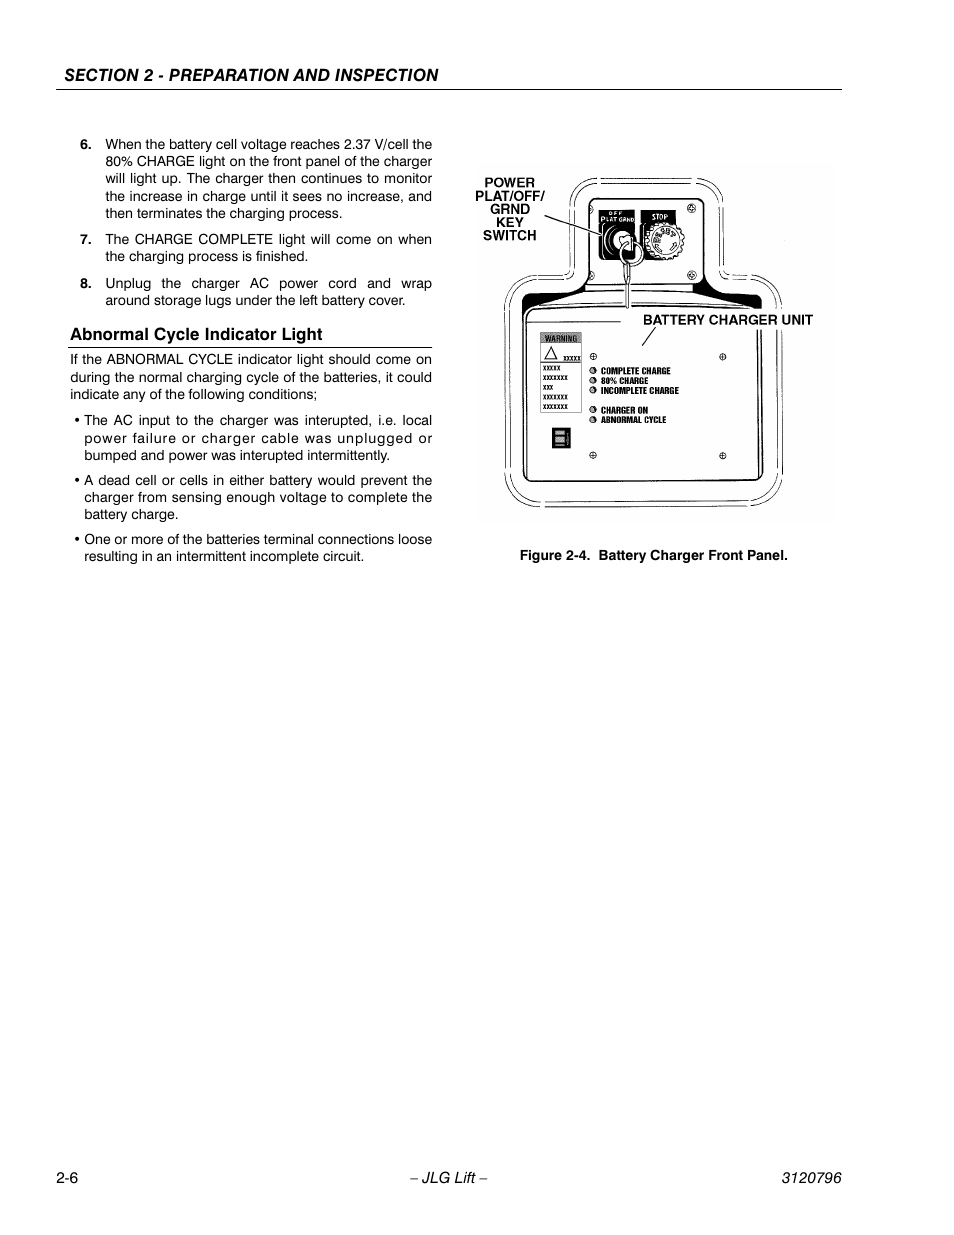 Abnormal Cycle Indicator Light Battery Charger Front Panel 6 Jlg 36 Volt Wiring Diagram Lift 15vpsp Operator Manual User Page 22 52